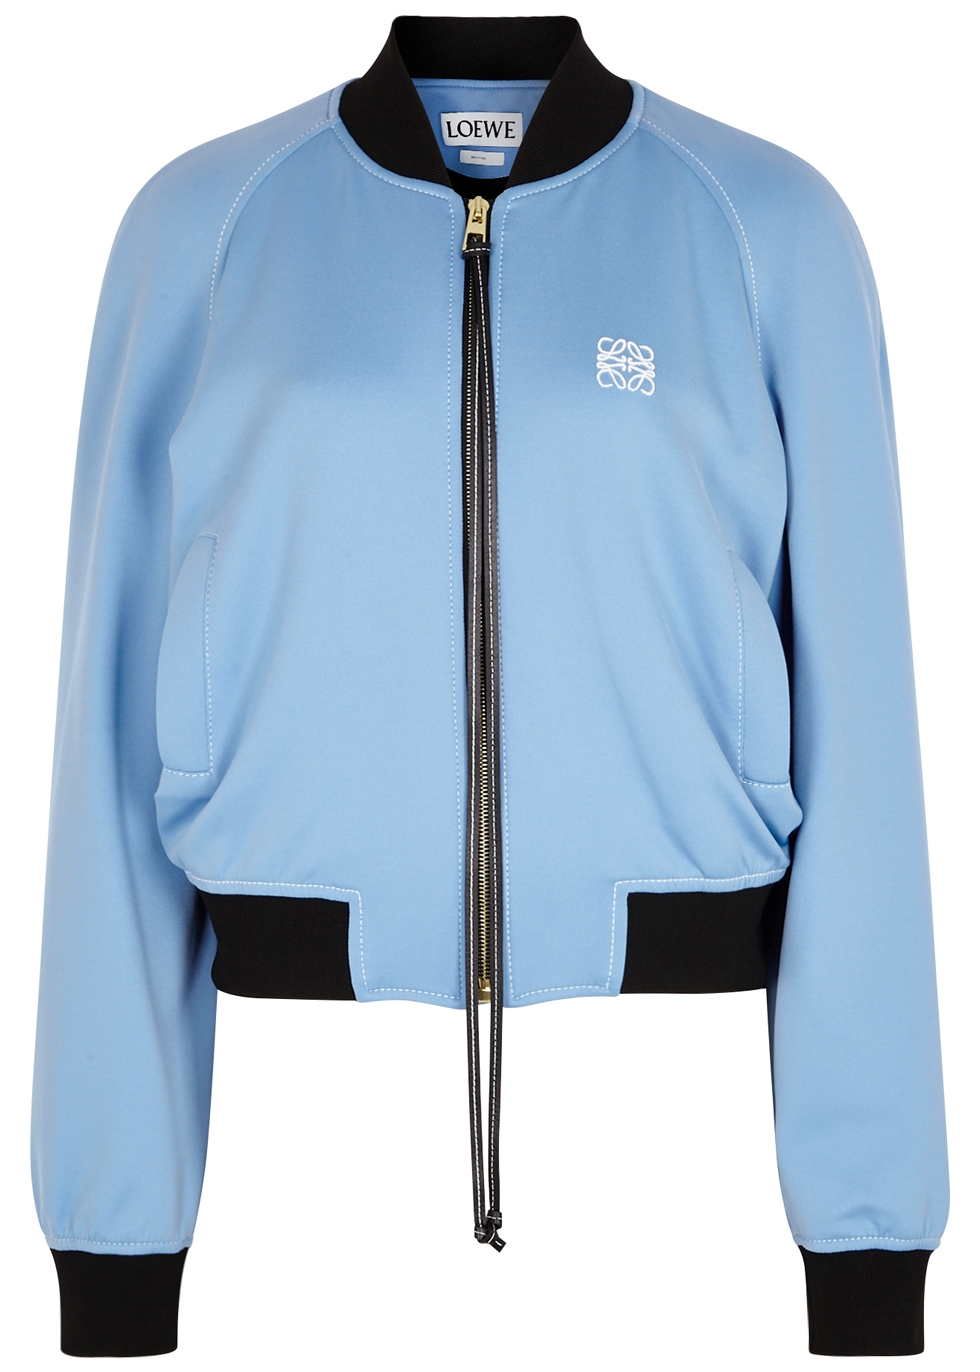 LOEWE BLUE AND NAVY JERSEY BOMBER JACKET